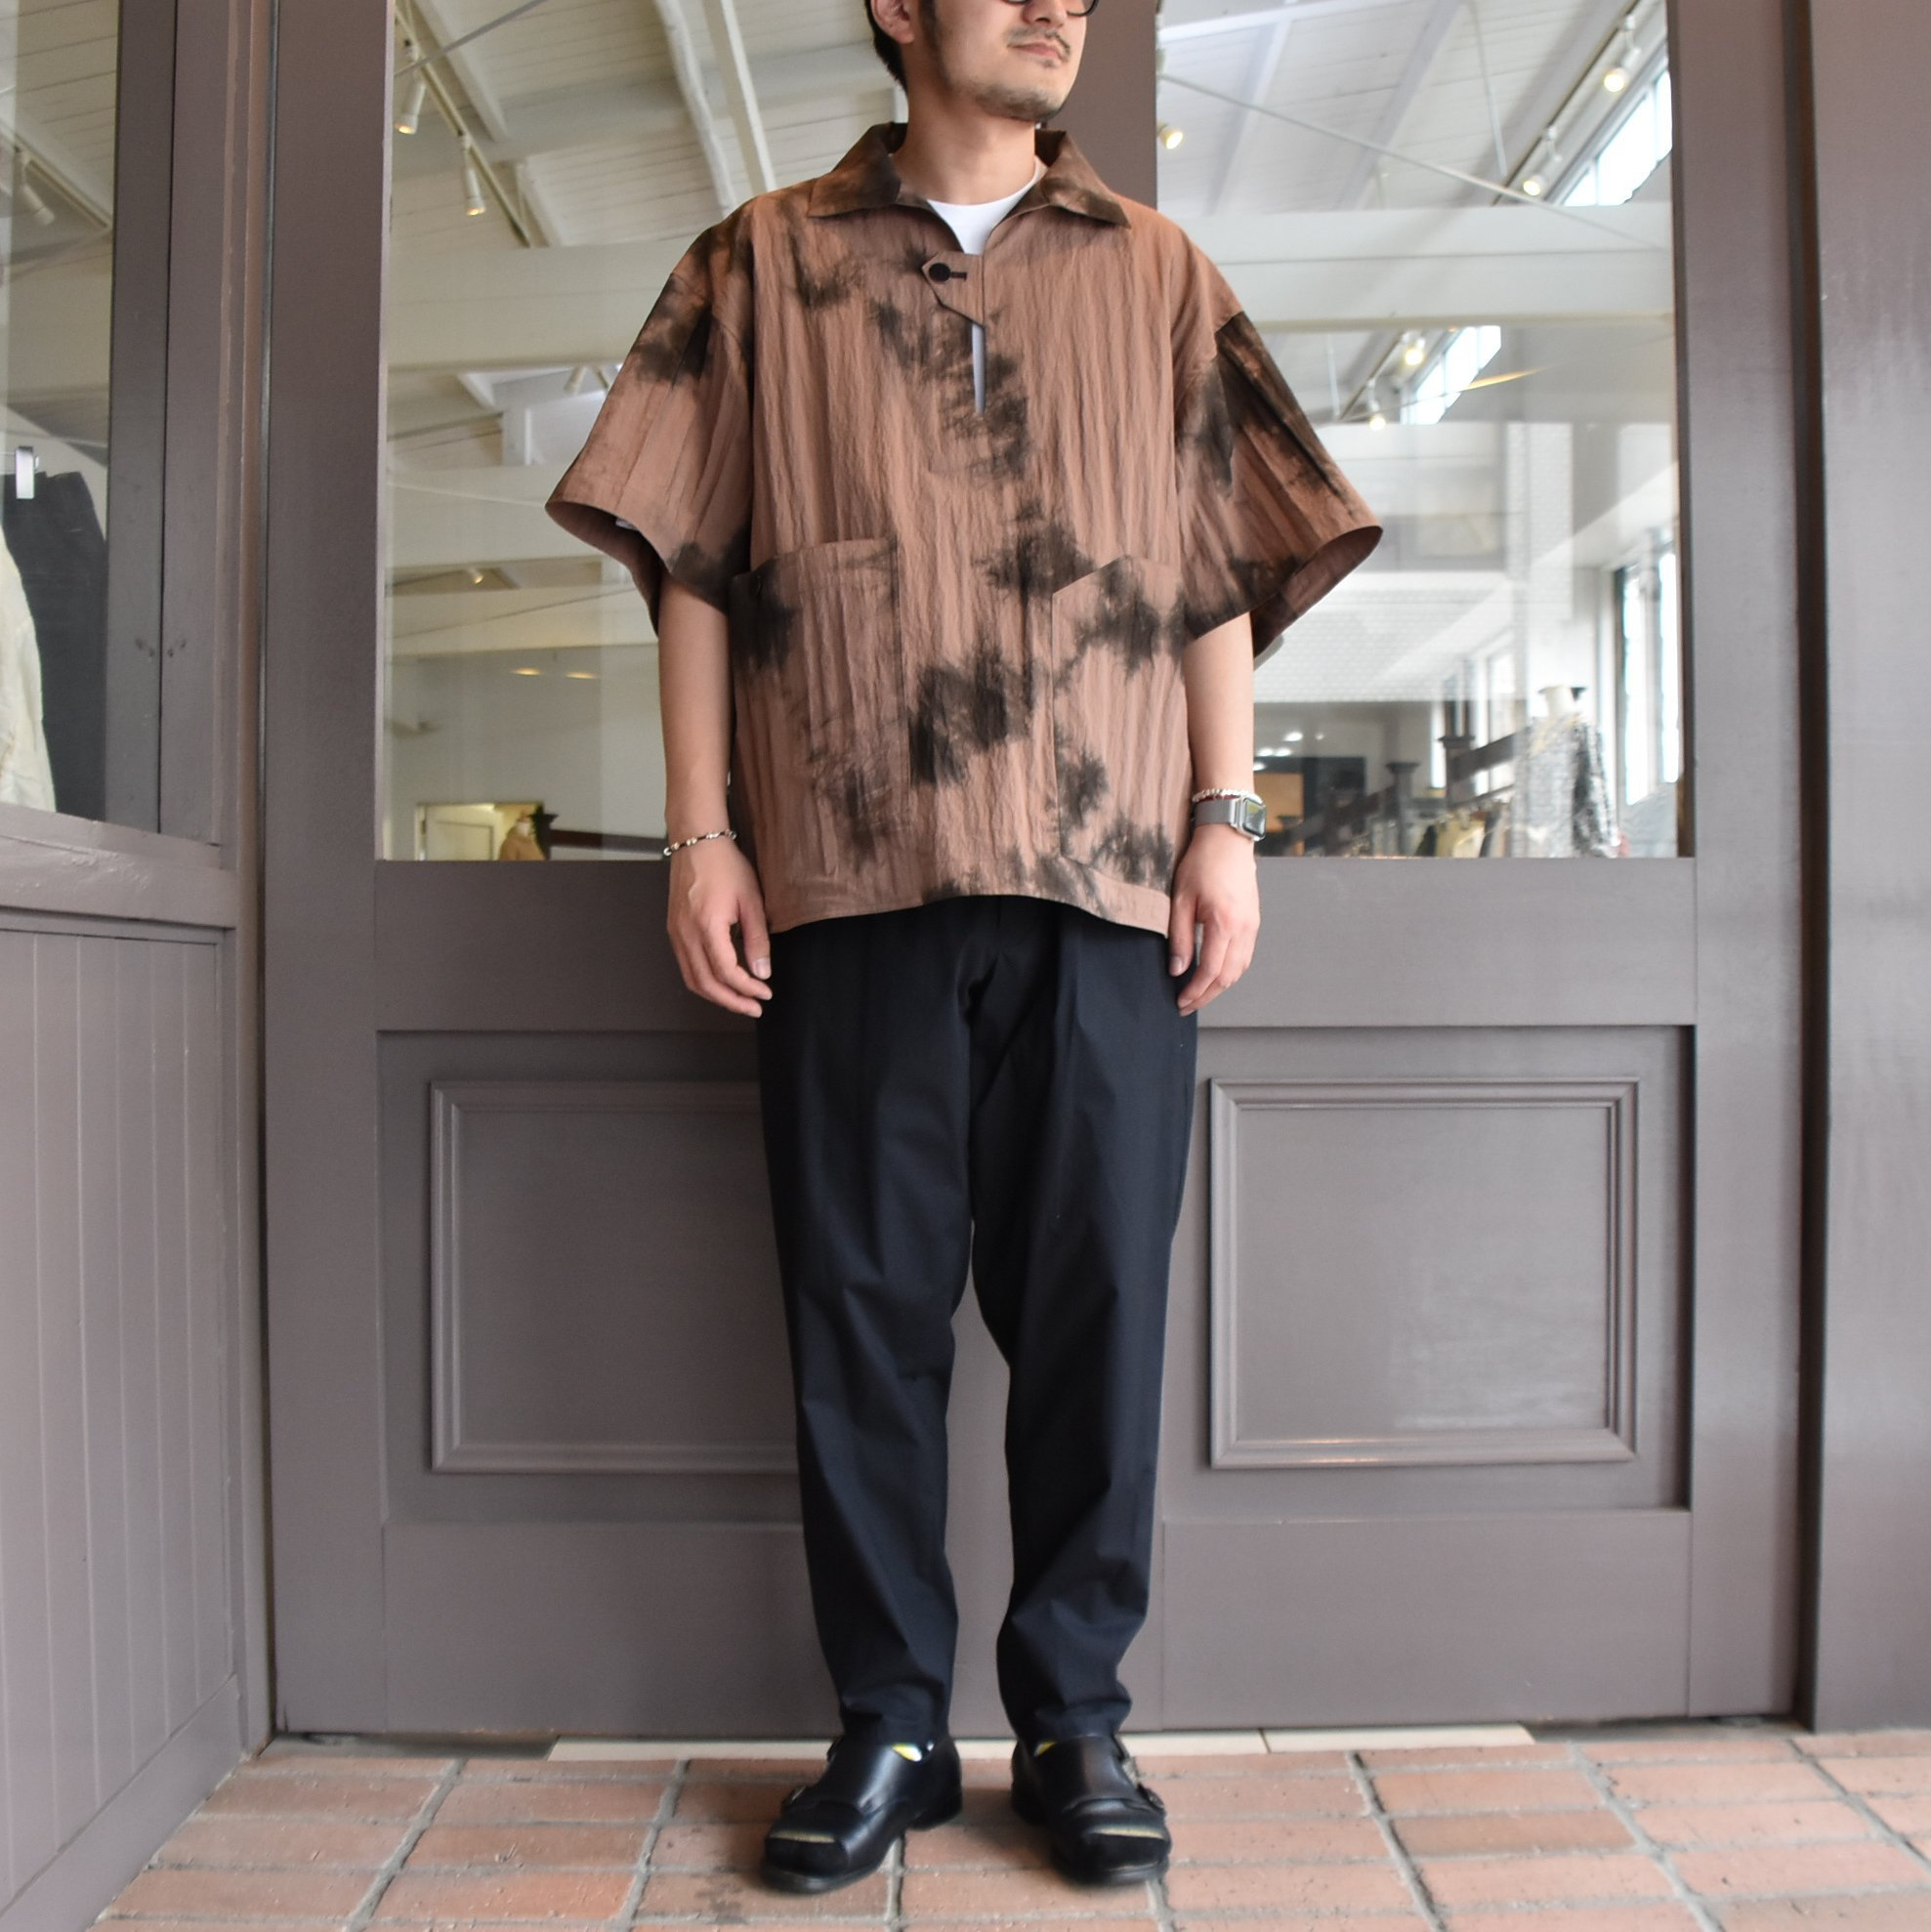 [2021]amachi.(アマチ) Packable Meeting Shirt -Brown Uneven Dye- #AY8-14(8)